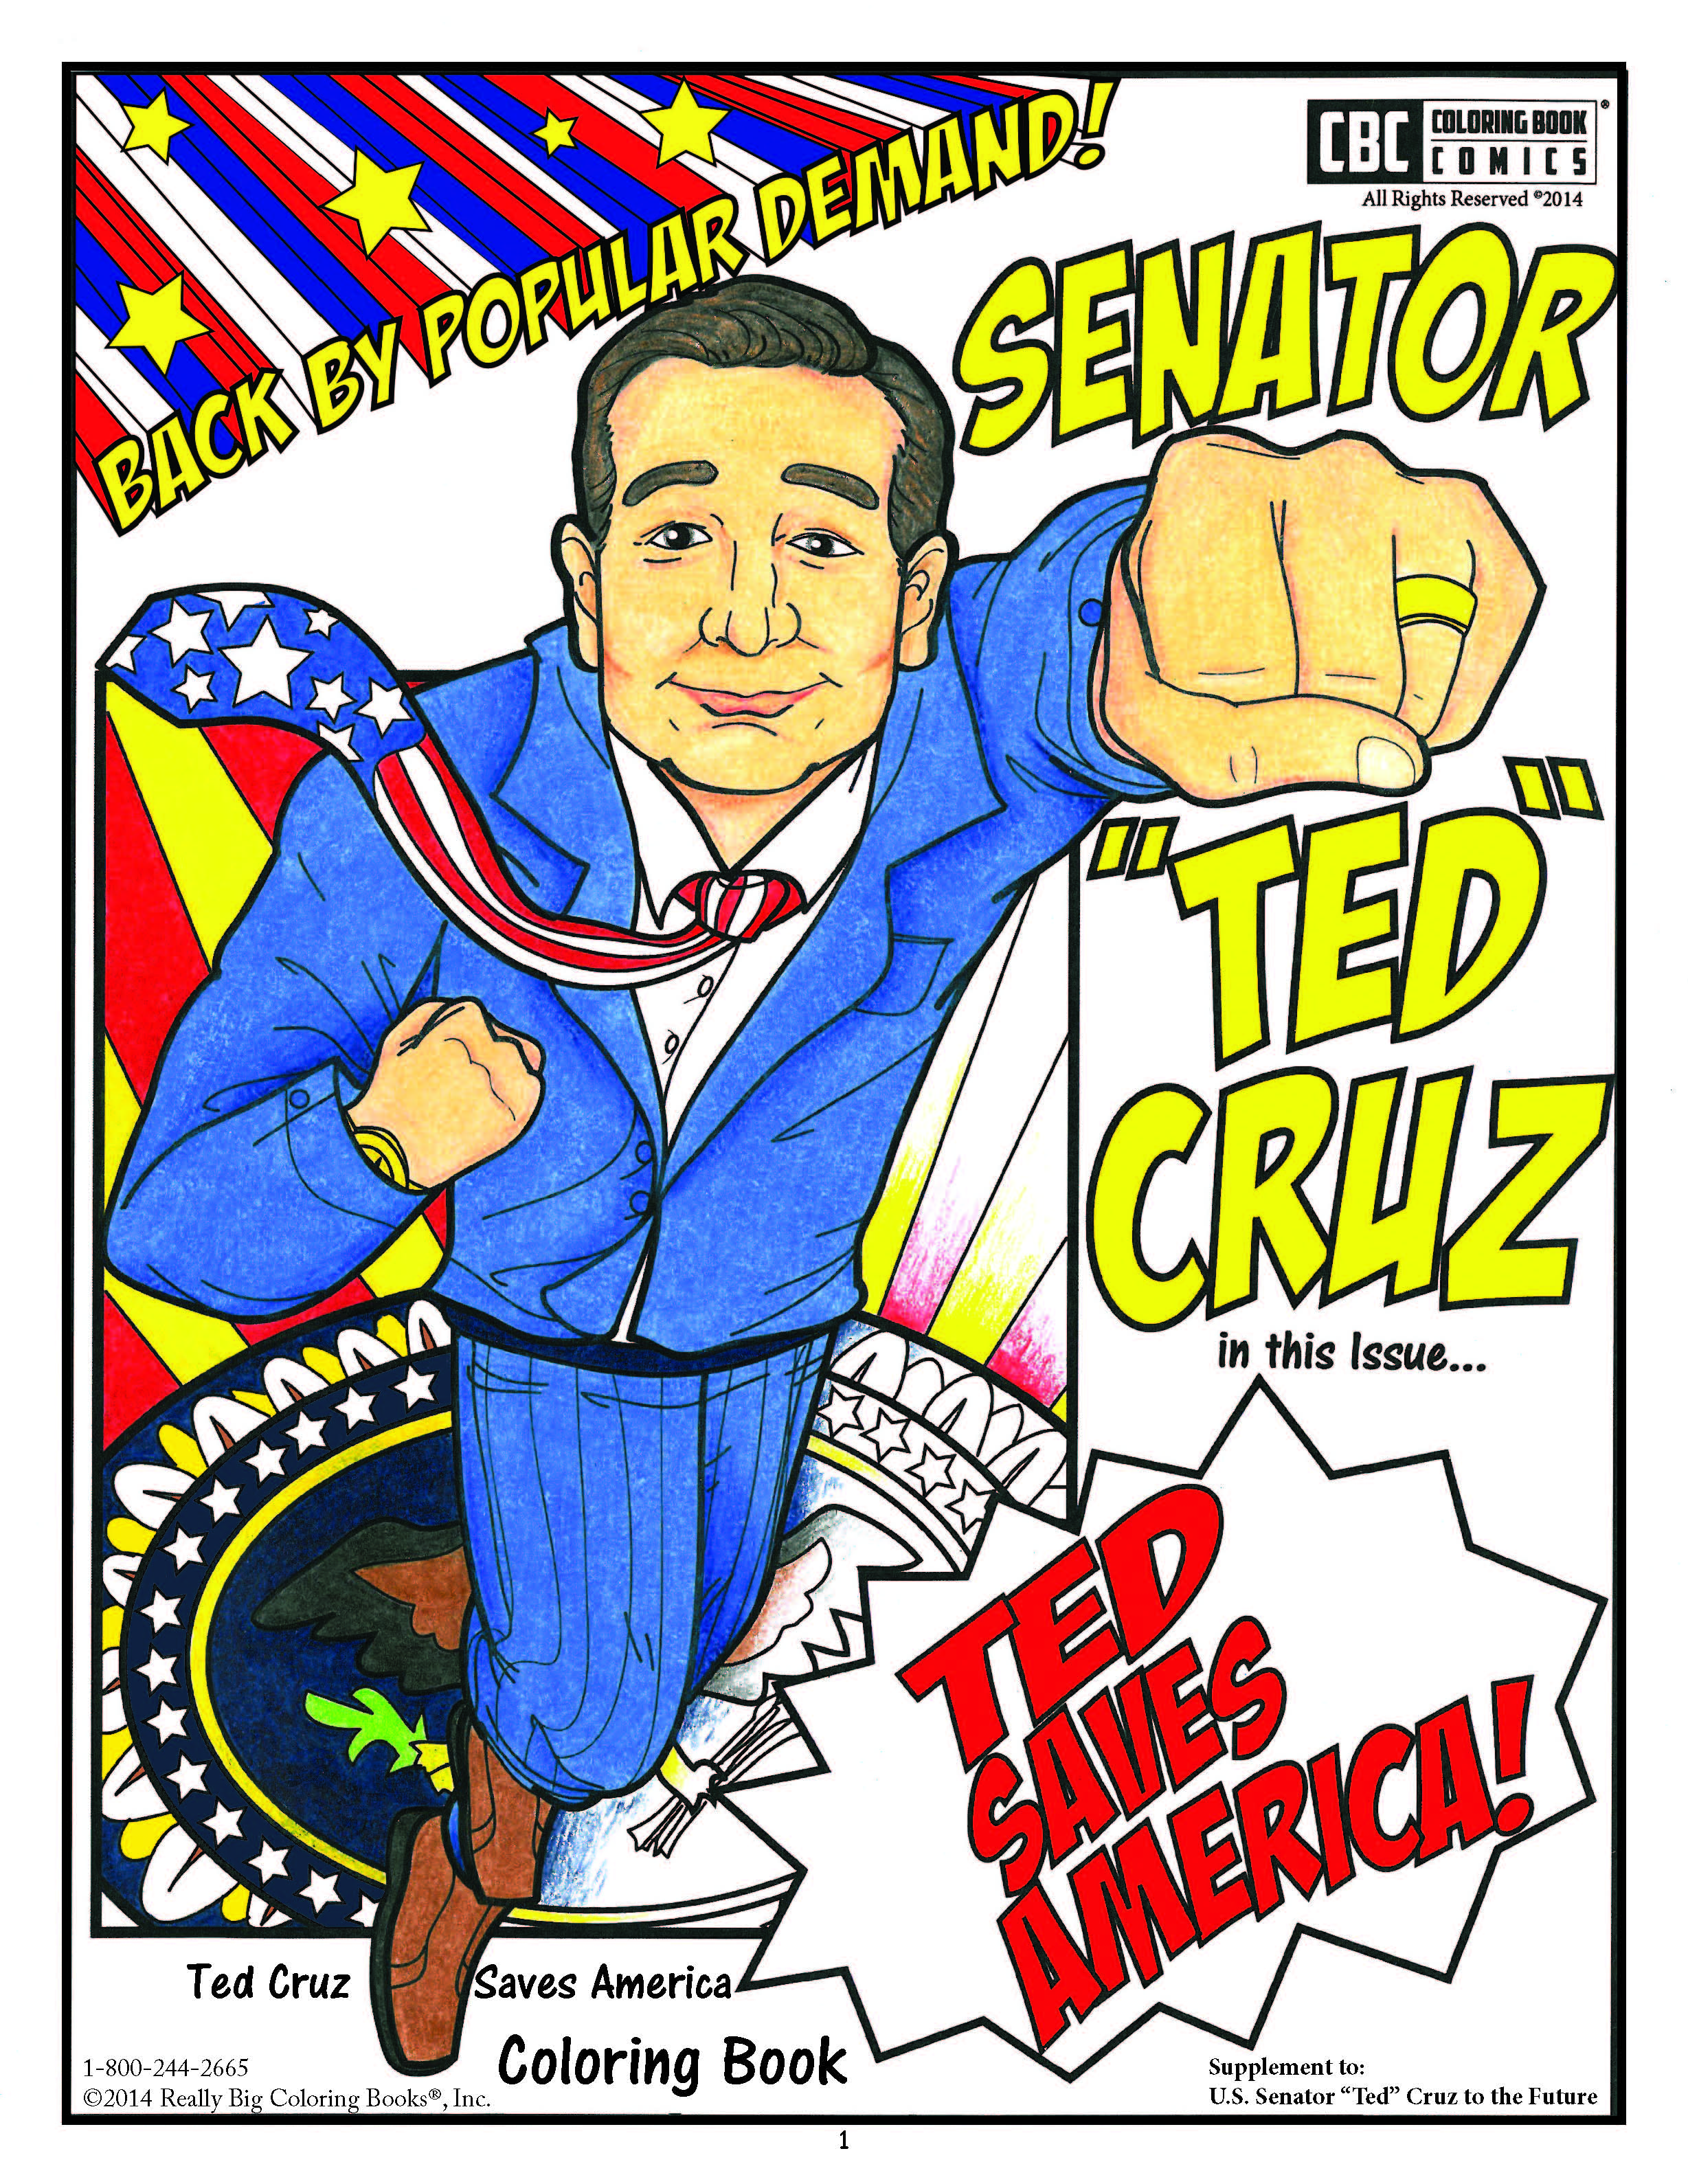 New Ted Cruz Coloring Book Takes Him to the White House